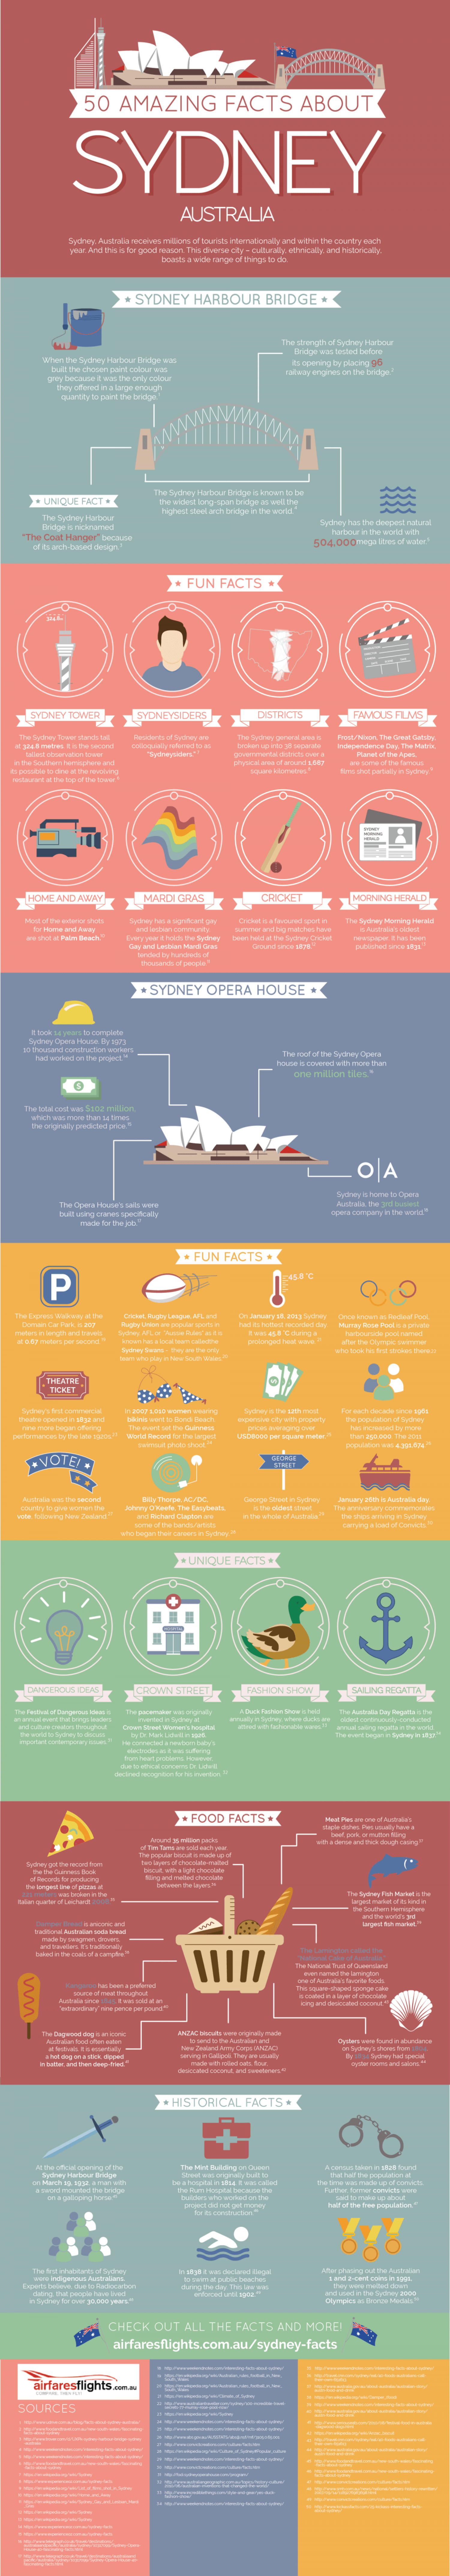 50 Facts about Sydney, Australia Infographic